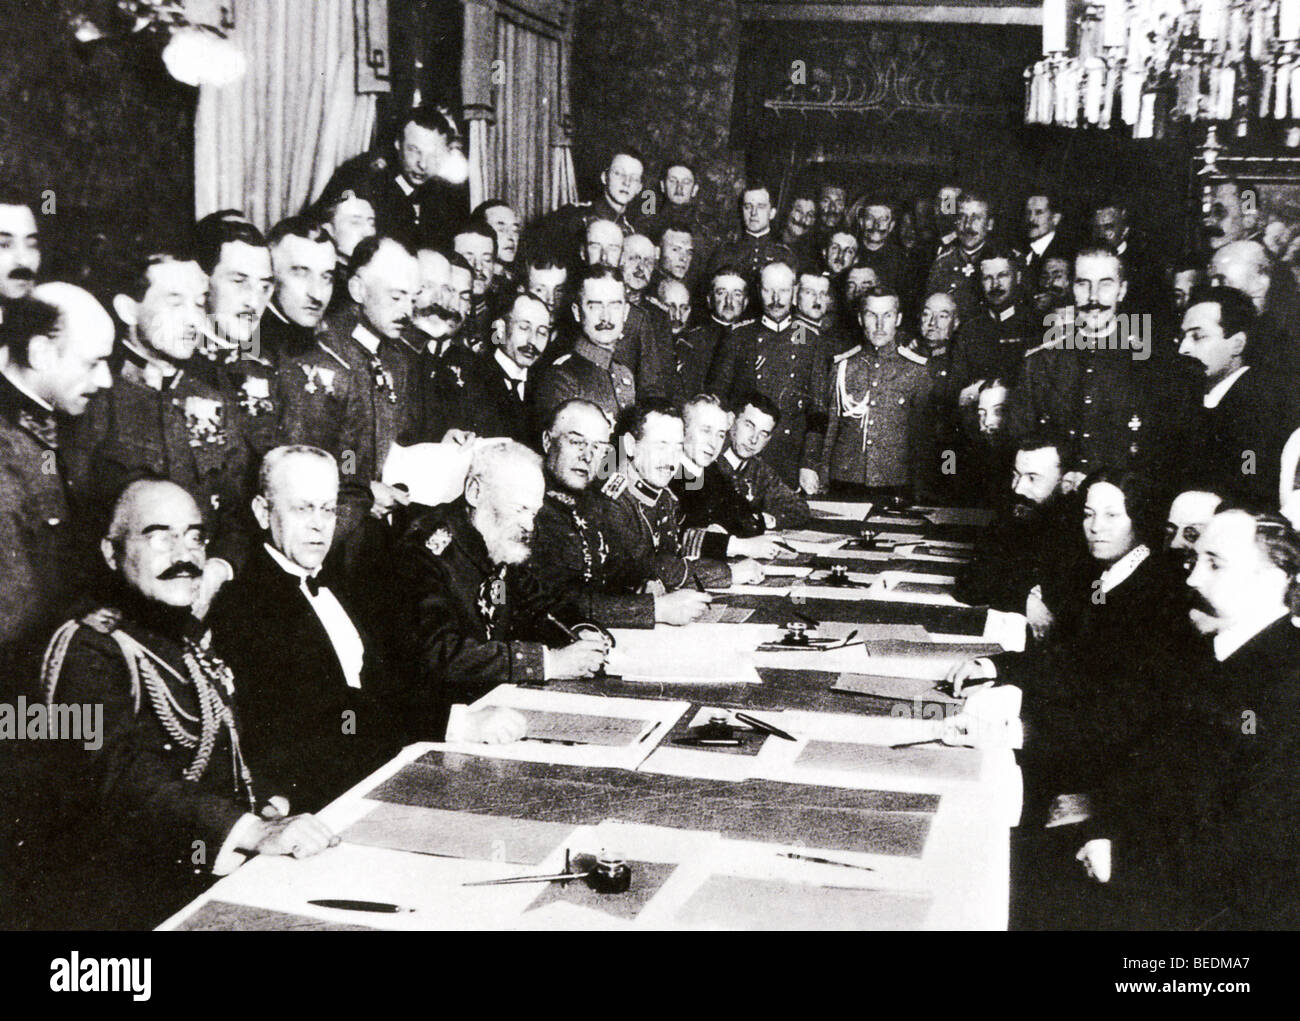 TREATY OF BREST-LITOVSK December 1917. German (at left) and Russian delegates at the preliminary talks - Stock Image